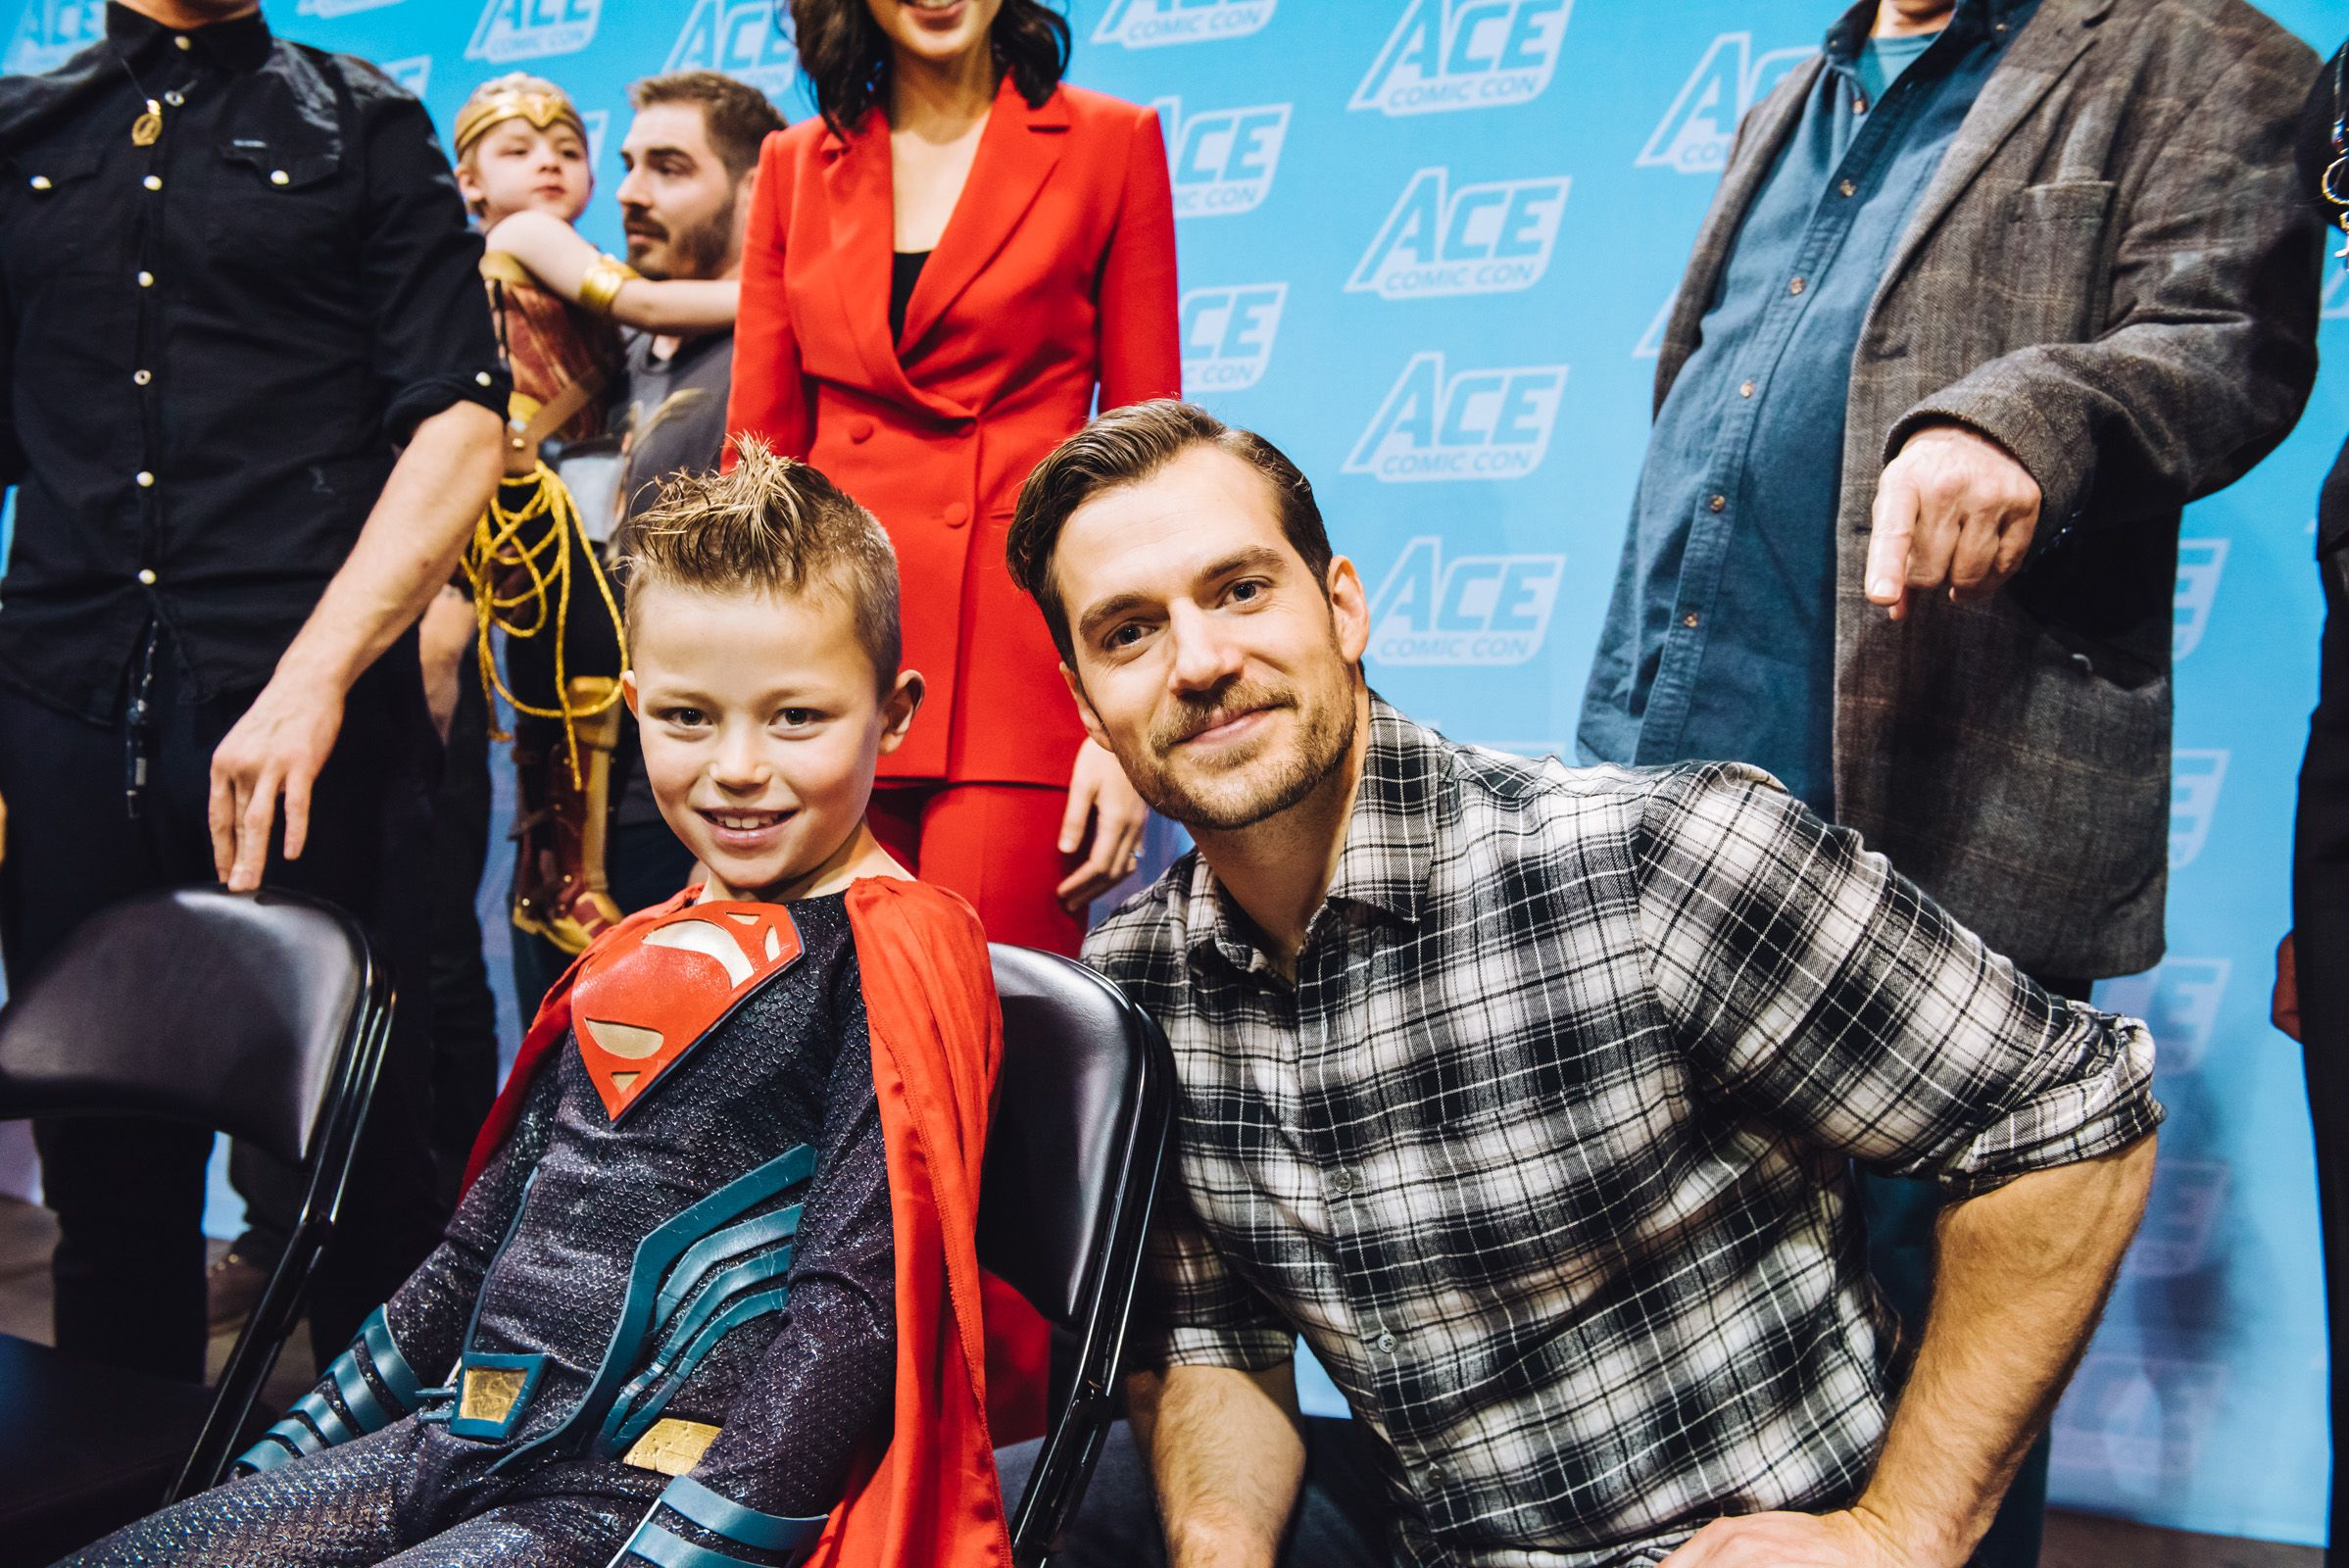 Henry Cavill taking photo ops at ACE Comic Con Long Island